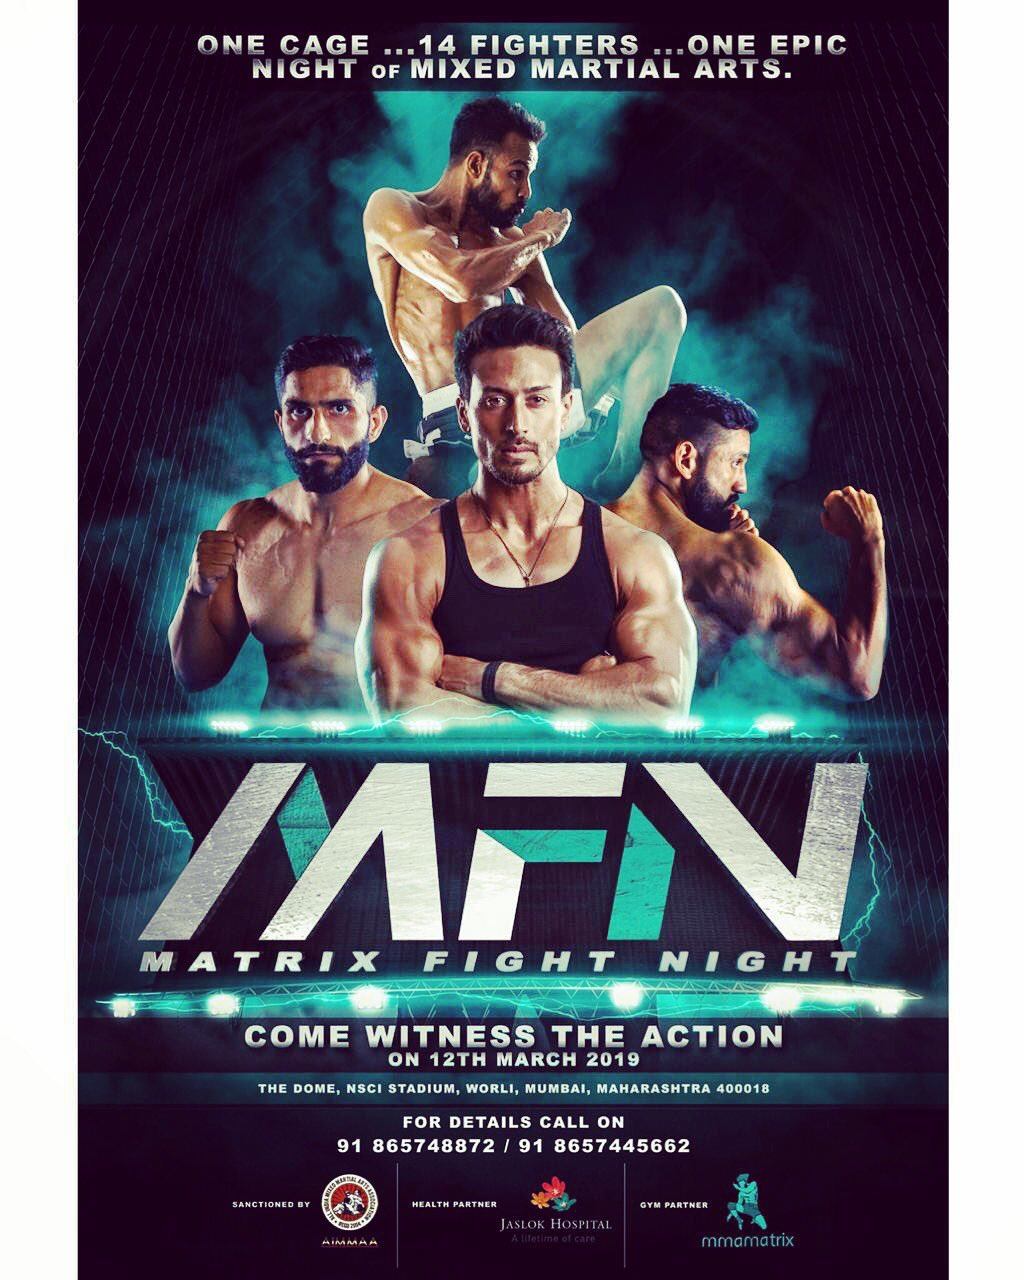 Matrix Fight Night Announced For March 12th